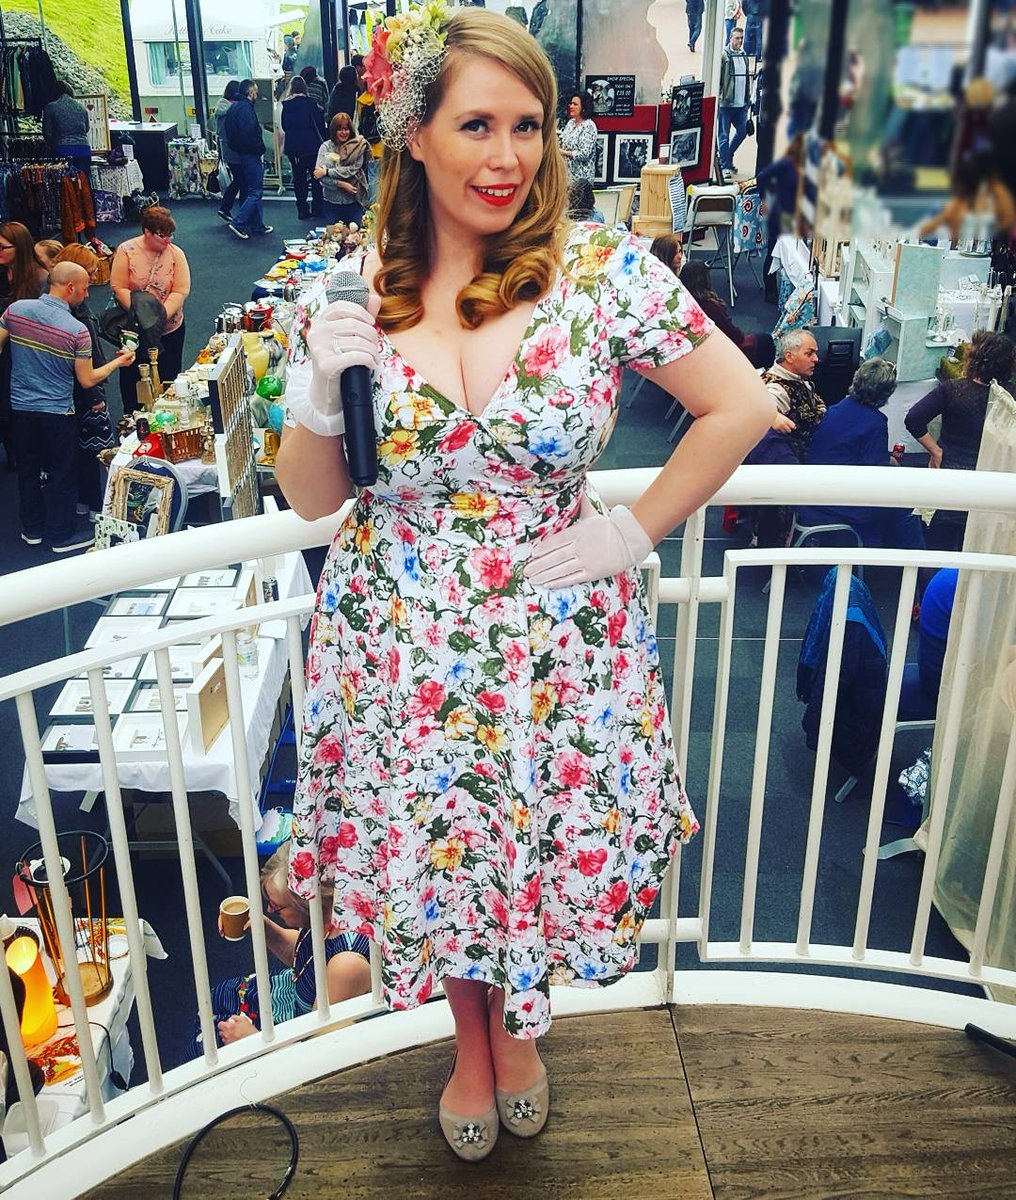 RT @LiannaHaynes Very much looking forward to returning to sing at @LoseleyGdnShow at @LoseleyPark again this weekend! #vintage #singer